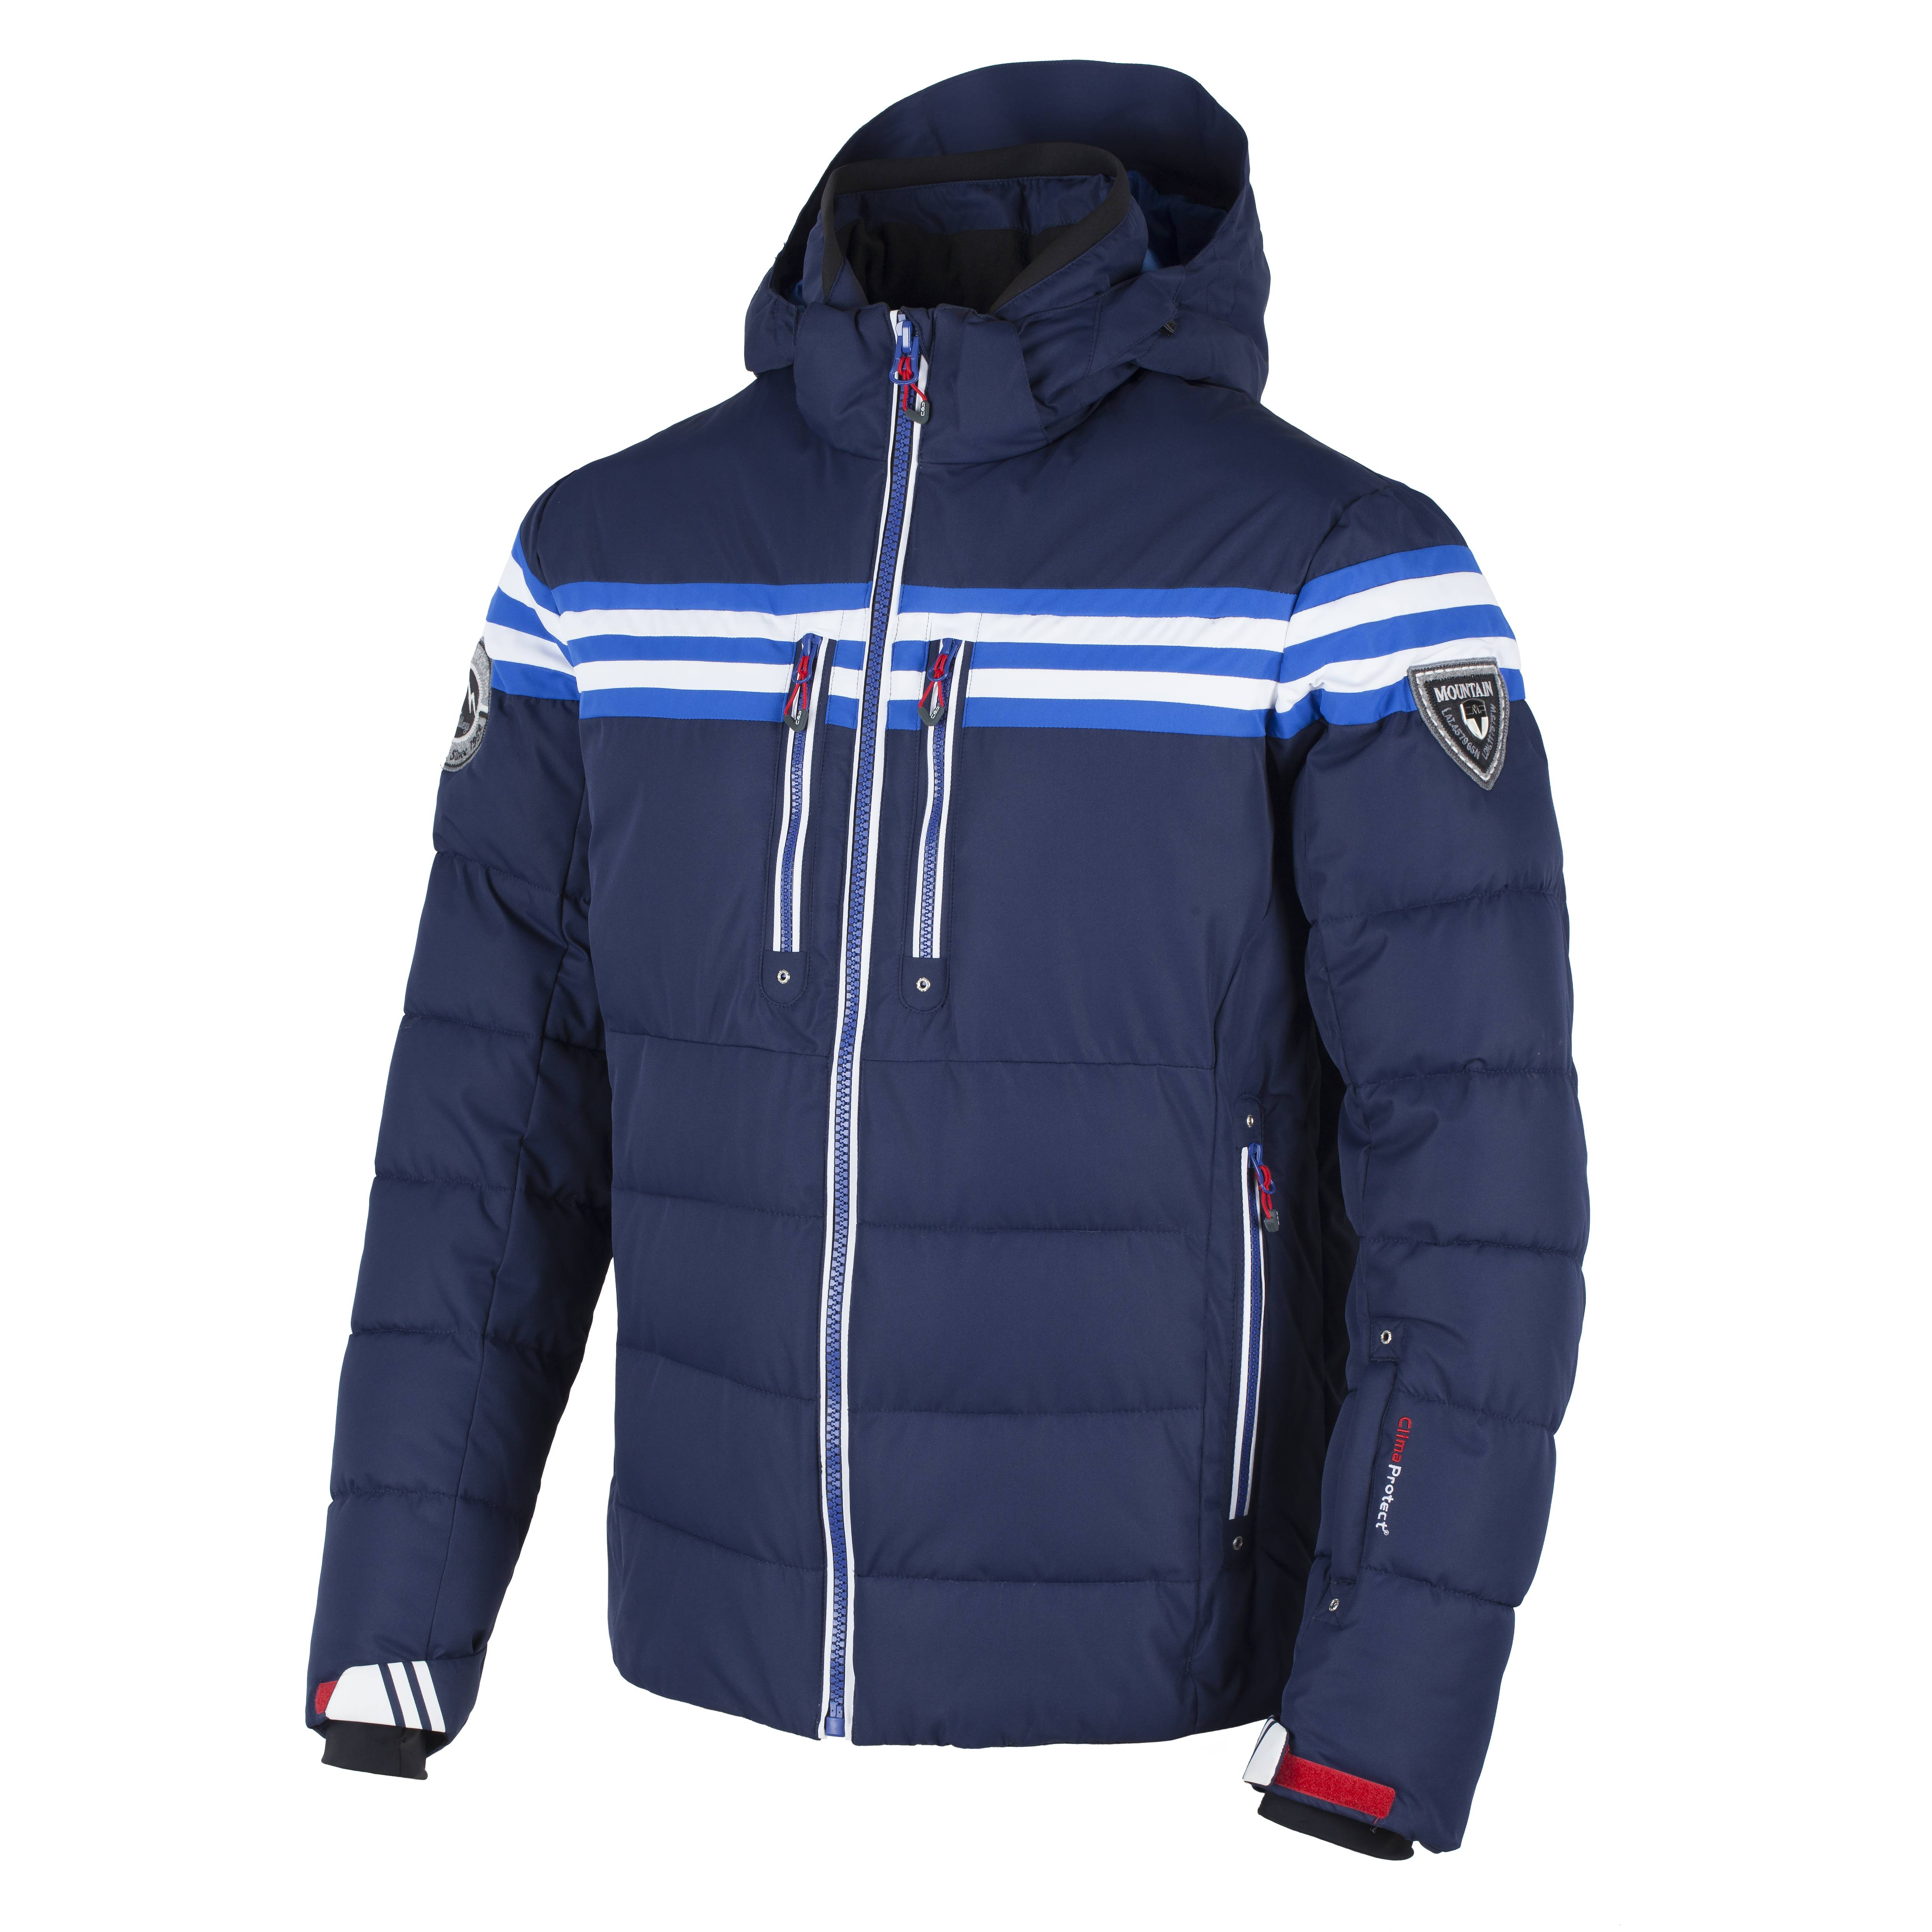 Shop for Men's Snow Jackets at REI - FREE SHIPPING With $50 minimum purchase. Top quality, great selection and expert advice you can trust. % Satisfaction Guarantee.